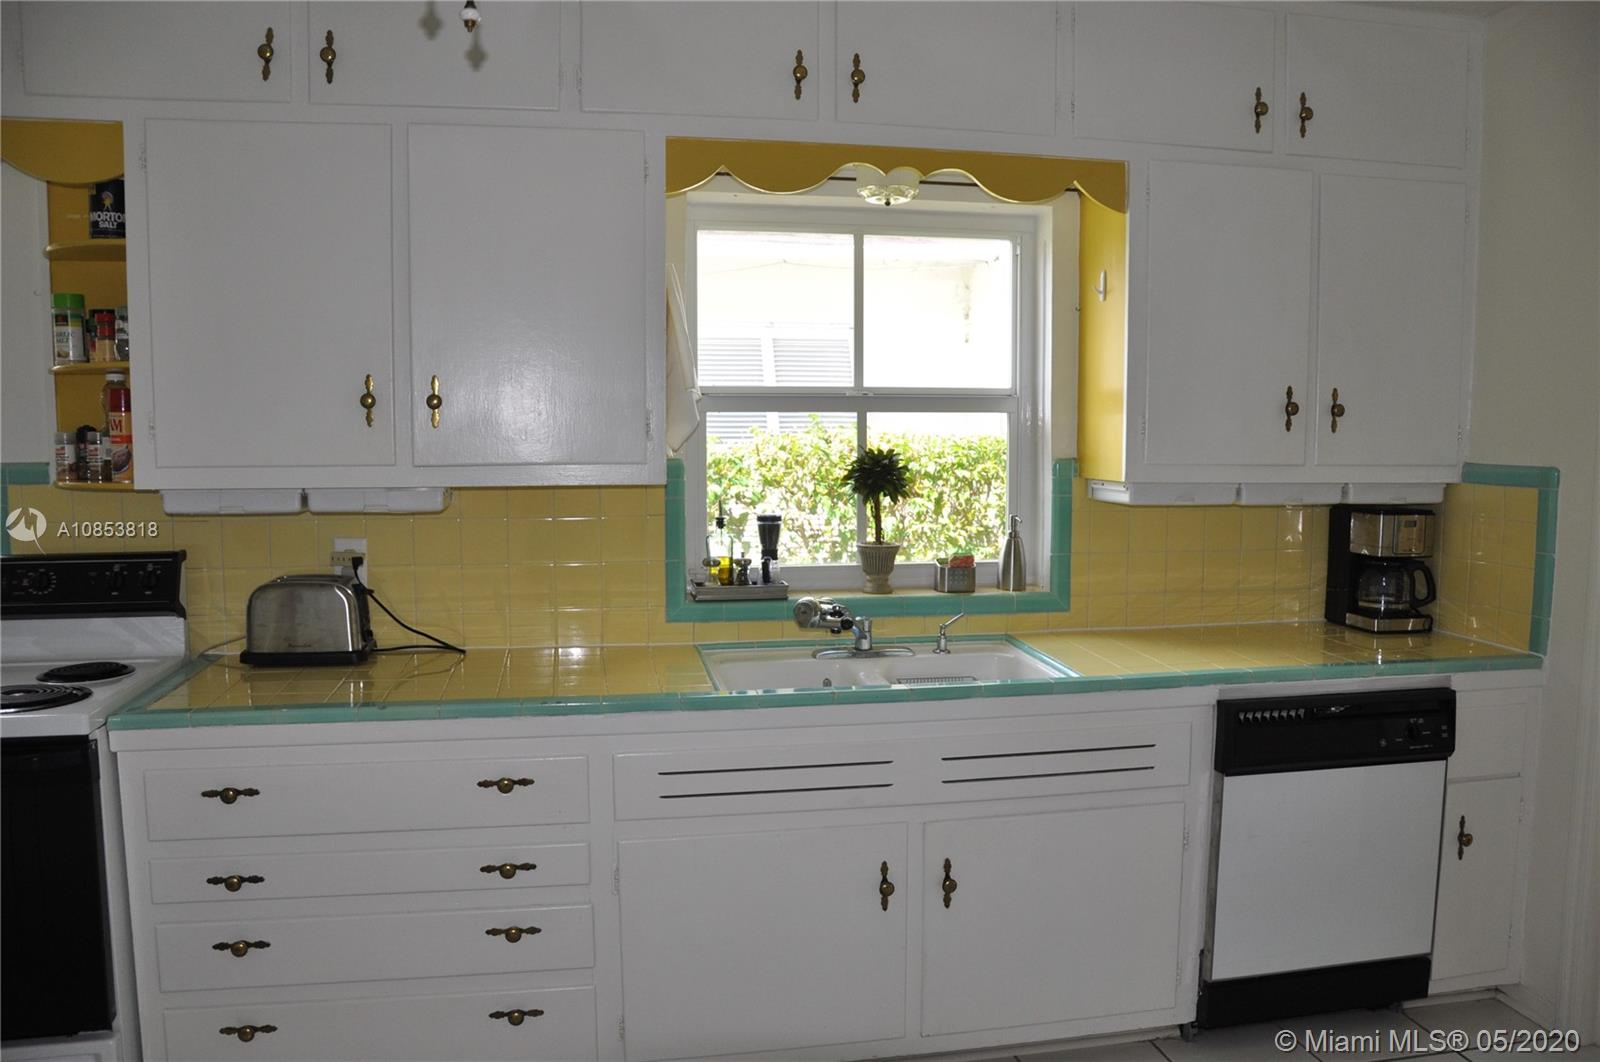 3551 Crystal Ct, Coconut Grove, Florida 33133, 2 Bedrooms Bedrooms, ,1 BathroomBathrooms,Residential,For Sale,3551 Crystal Ct,A10853818